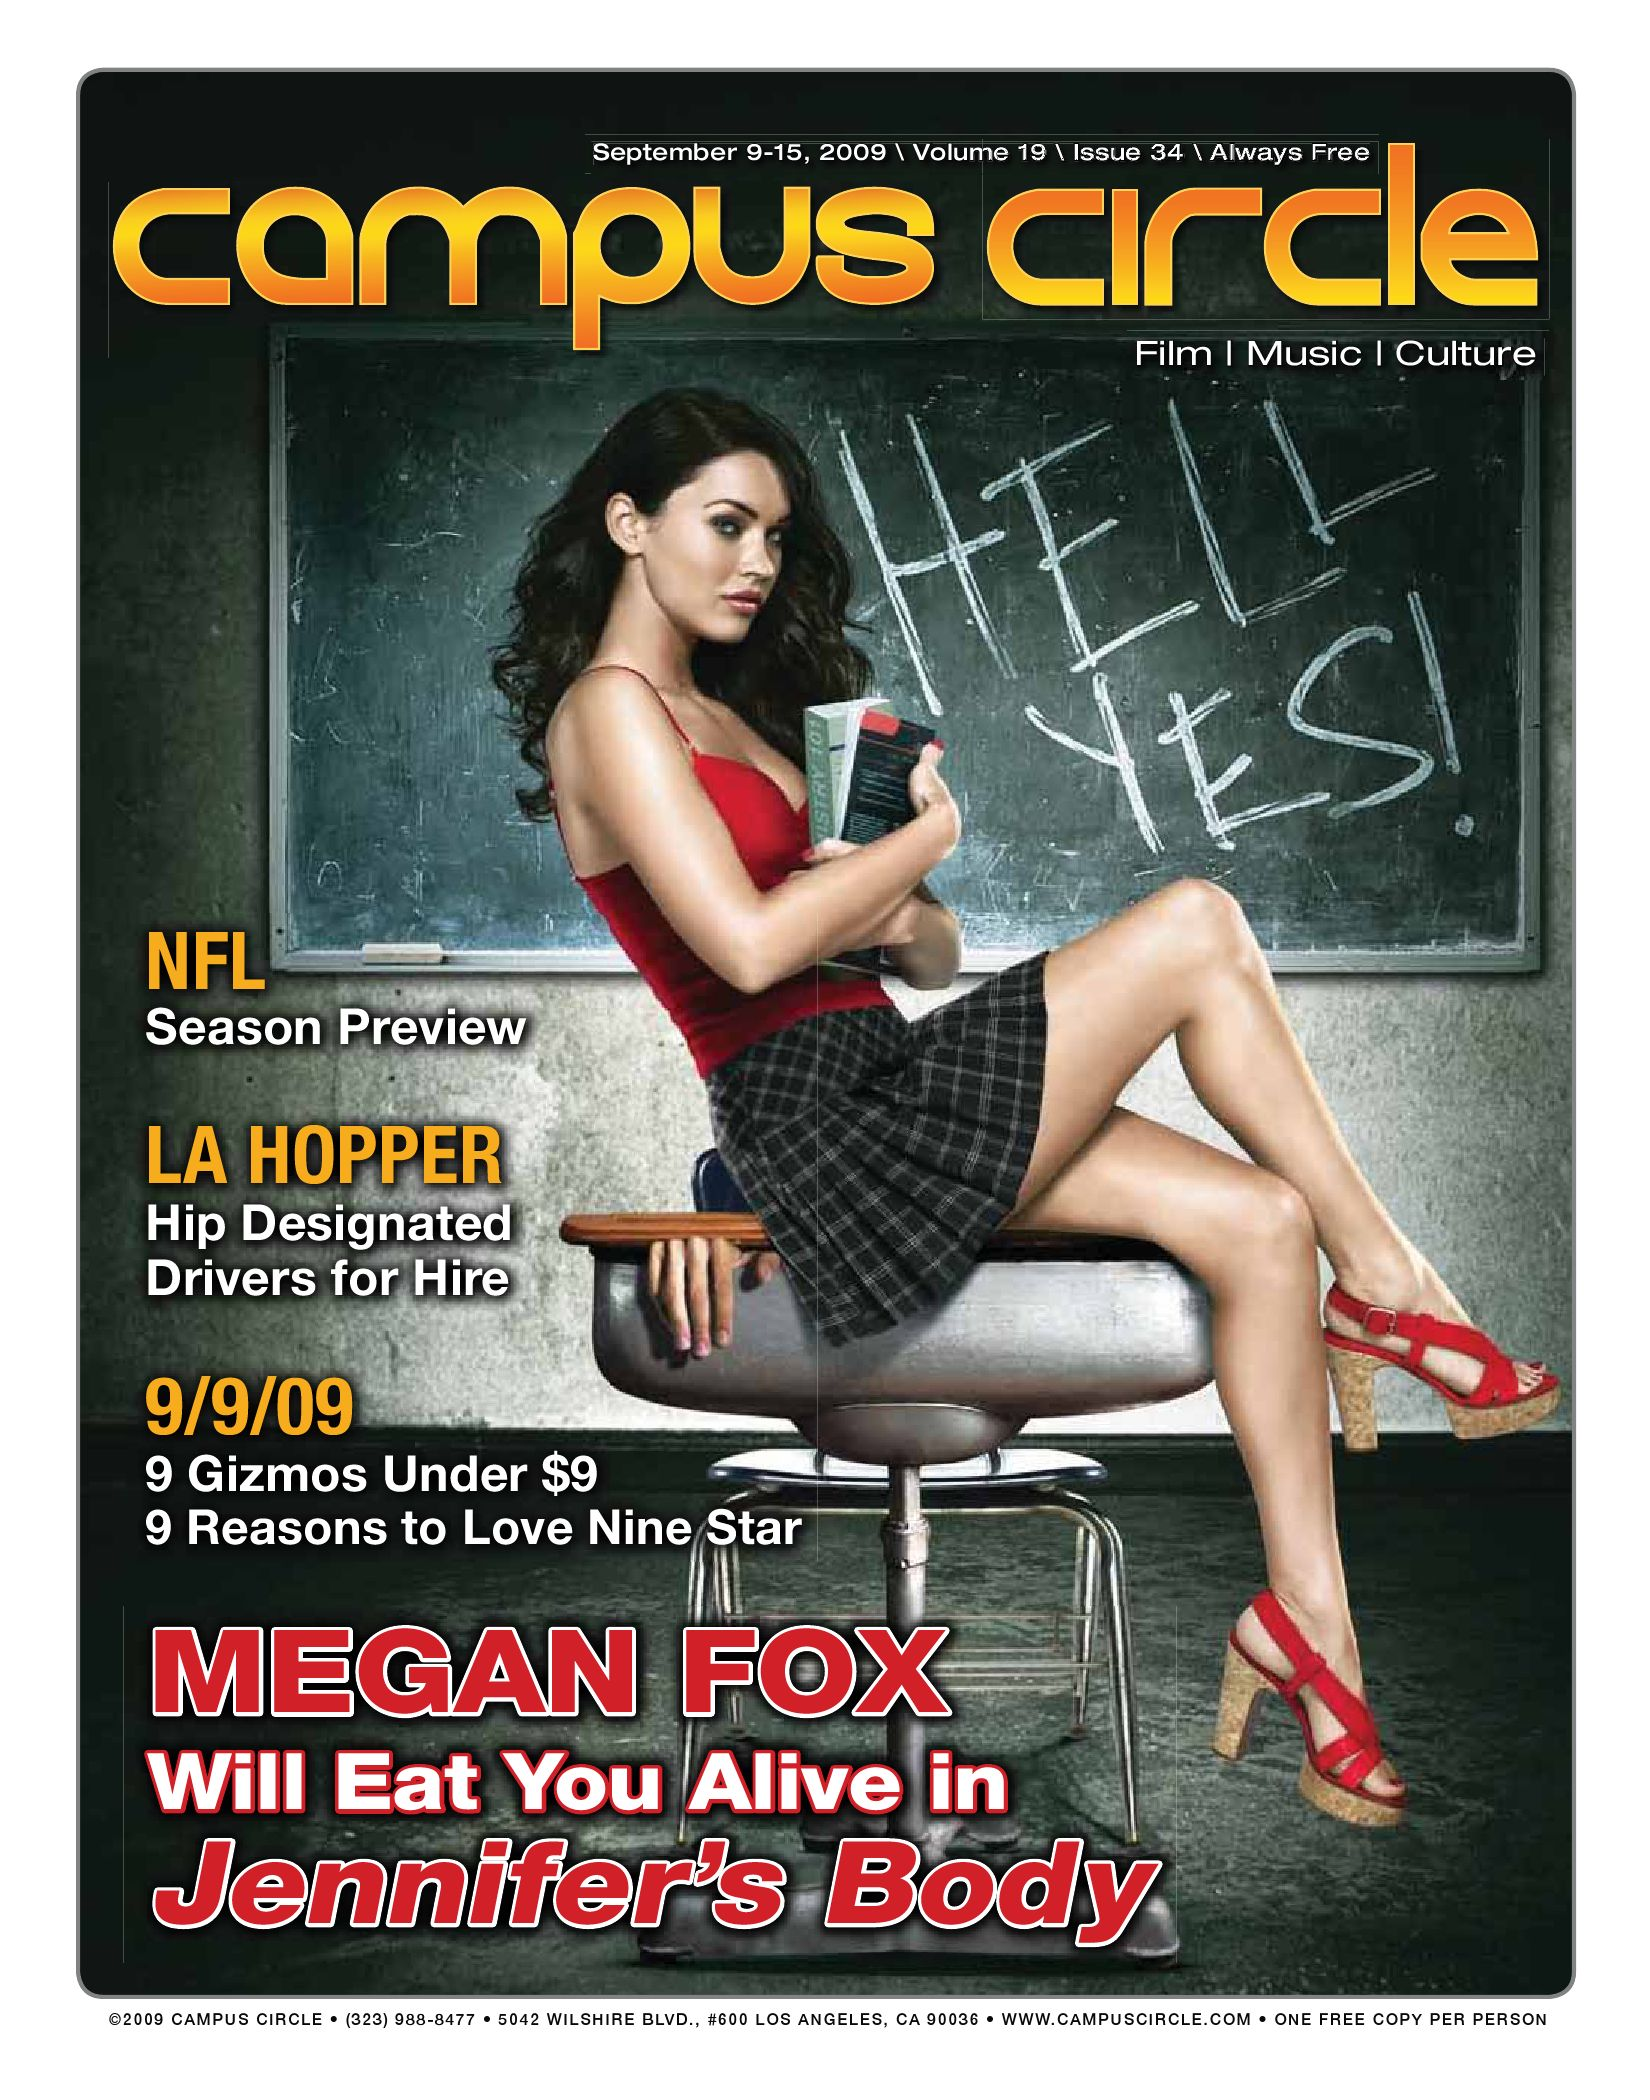 a9468ece6717 Campus Circle Newspaper Vol. 19 Issue 34 by Campus Circle - issuu